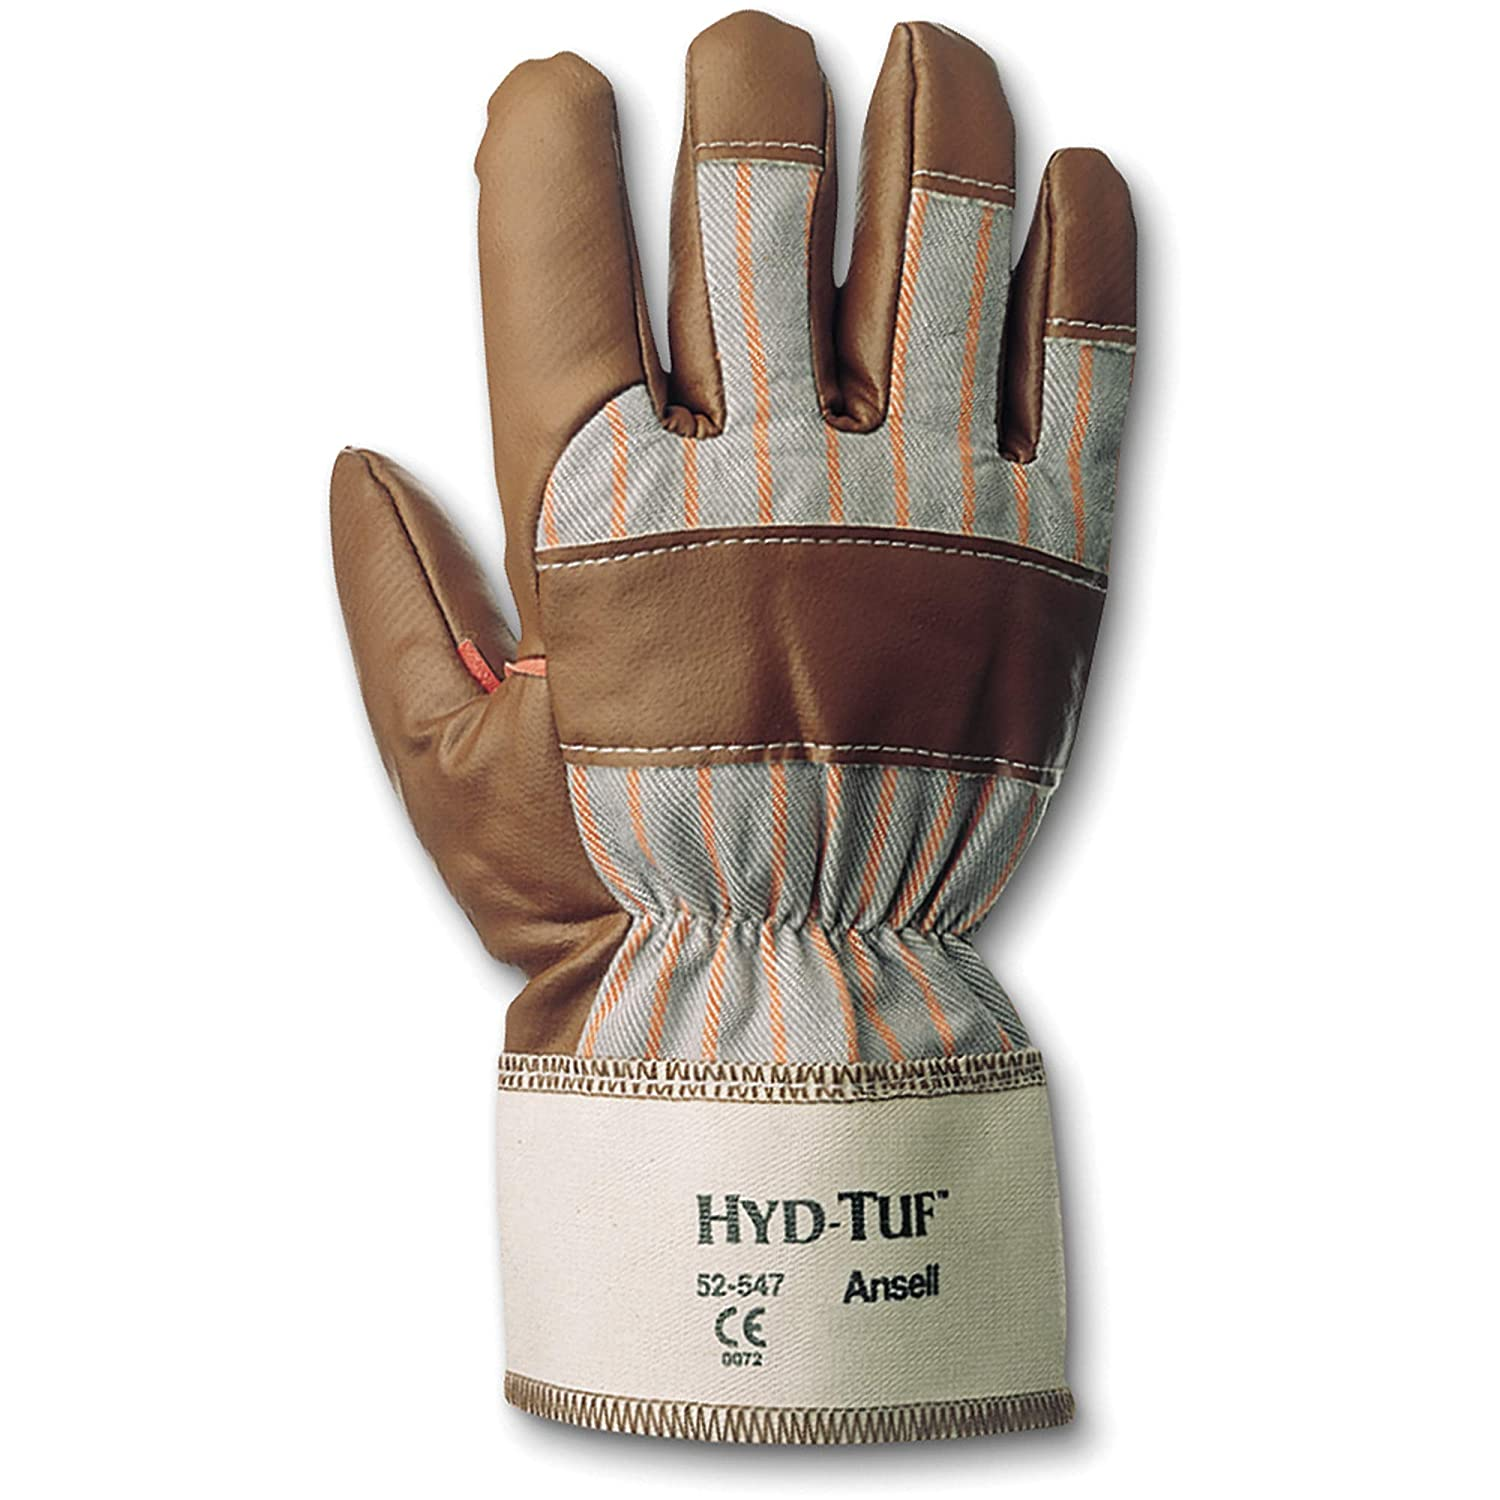 10 Length Brown Ansell 103569 HYD-Tuf 52-547 Gunn Cut Coated Work Gloves 0.5 Height Size 10 Pack of 12 6.5 Wide 0.5 Height 10 Length 6.5 Wide